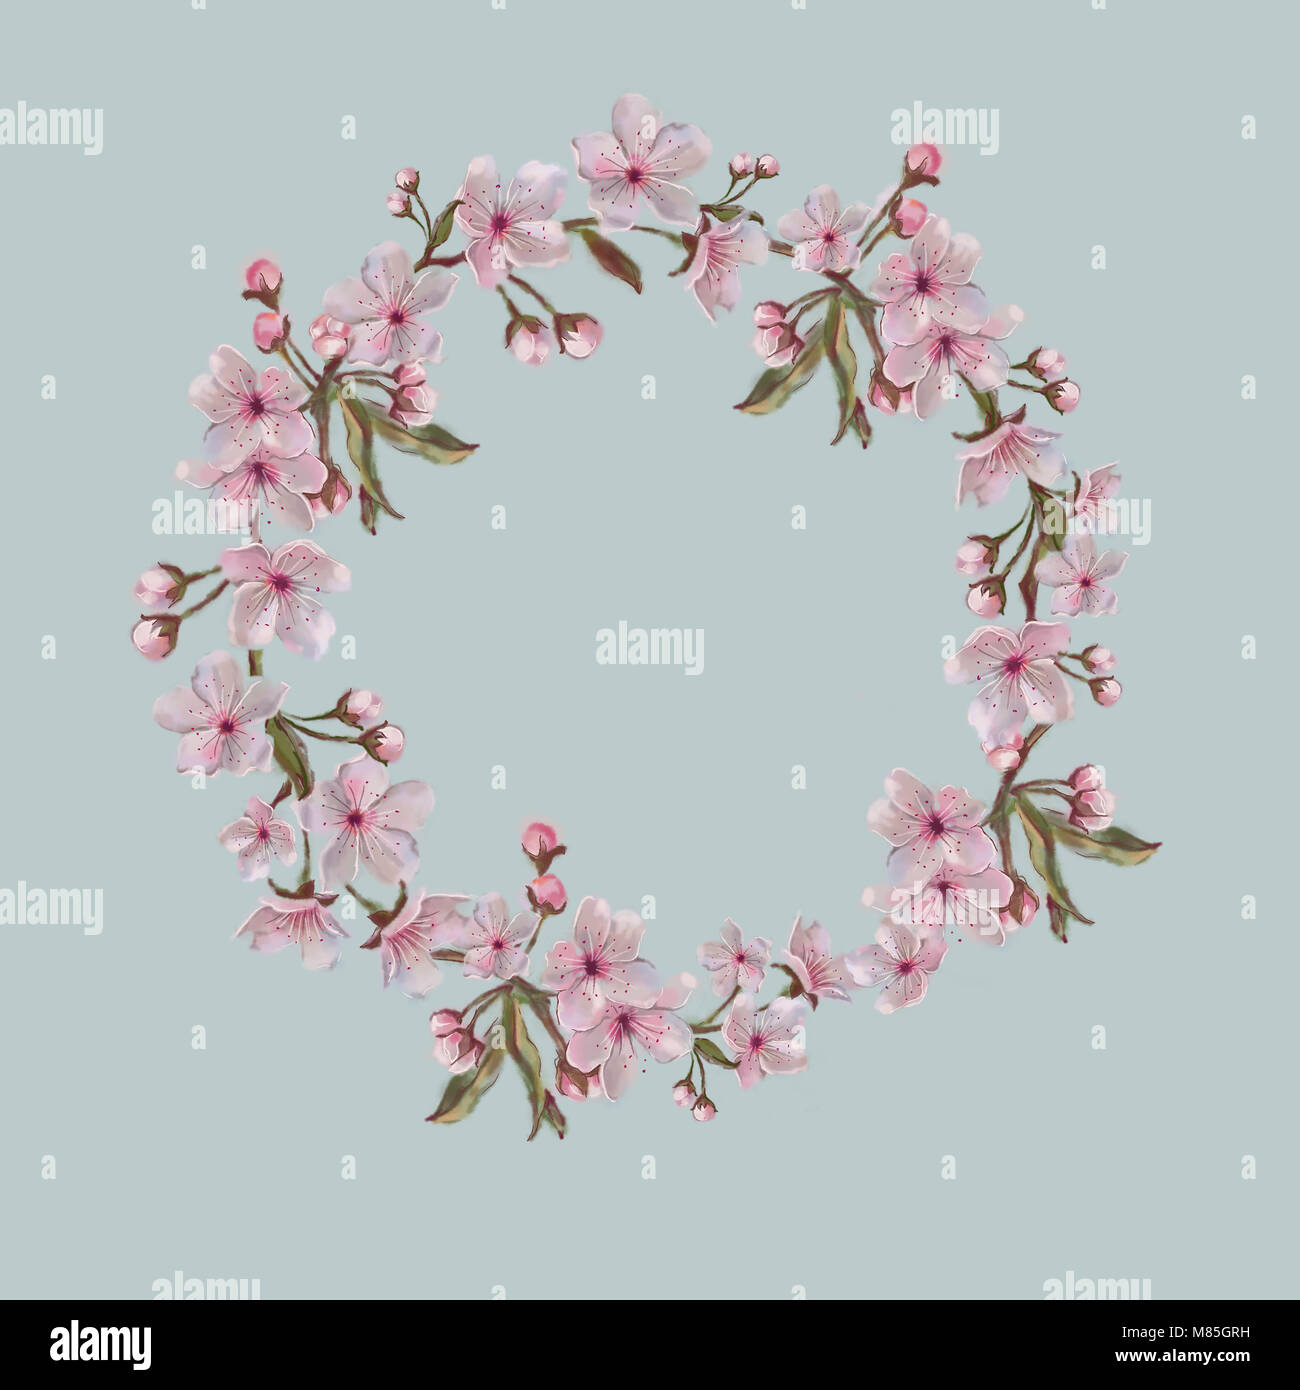 Watercolor Floral Wreath Isolated on Blue. Spring Blossom Wreath for ...